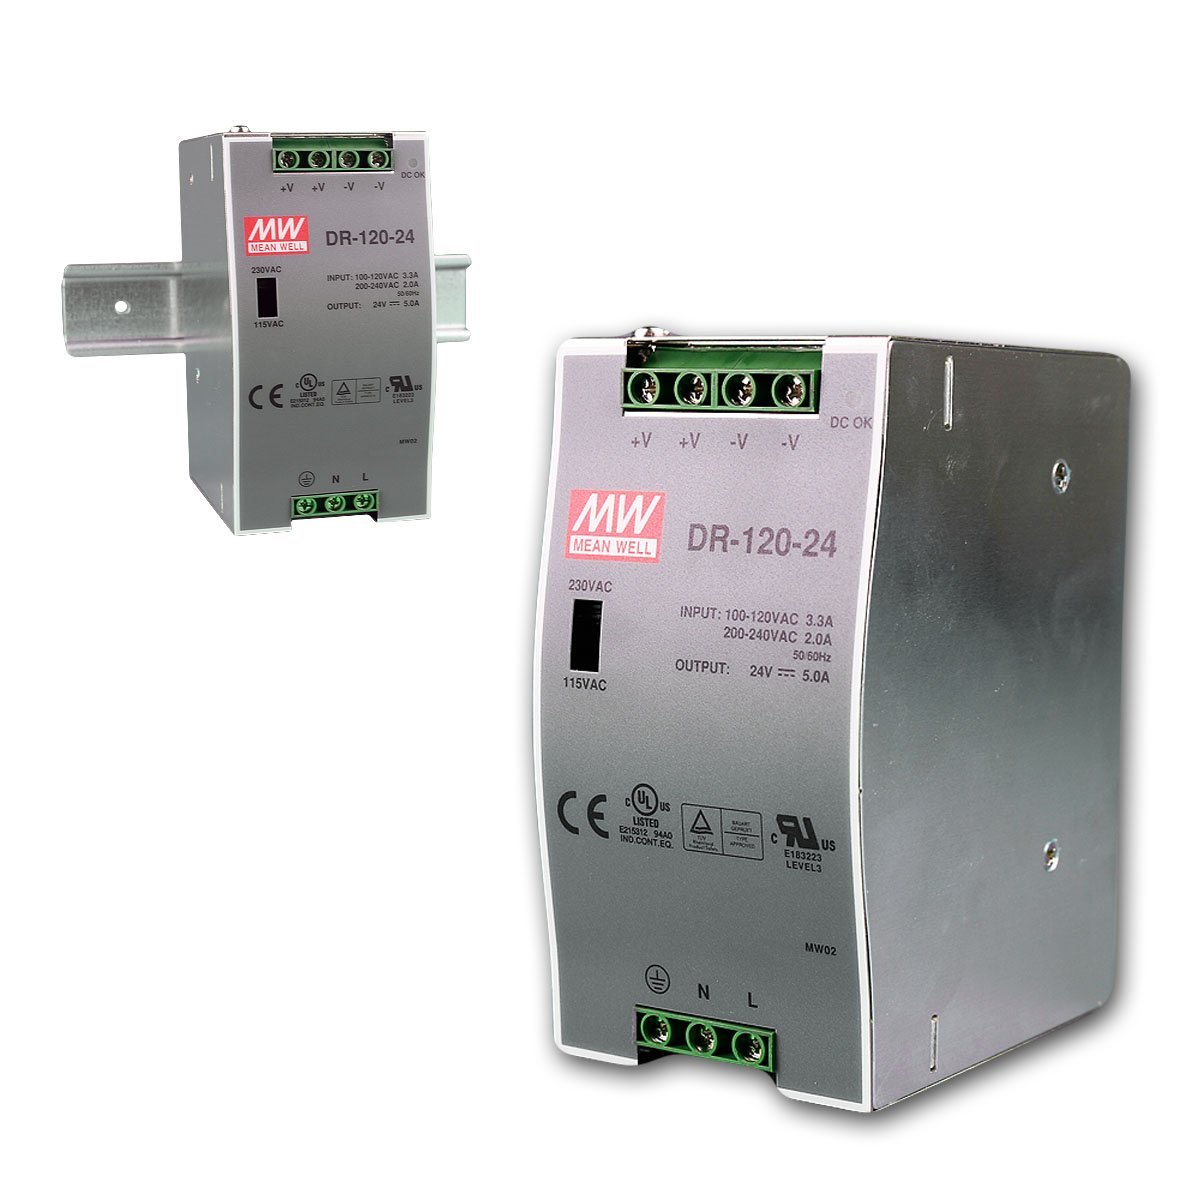 MEAN WELL DR-120-24 DR-120 Series 120 W Single Output 24 V AC/DC Industrial DIN Rail Power Supply - 1 item(s)